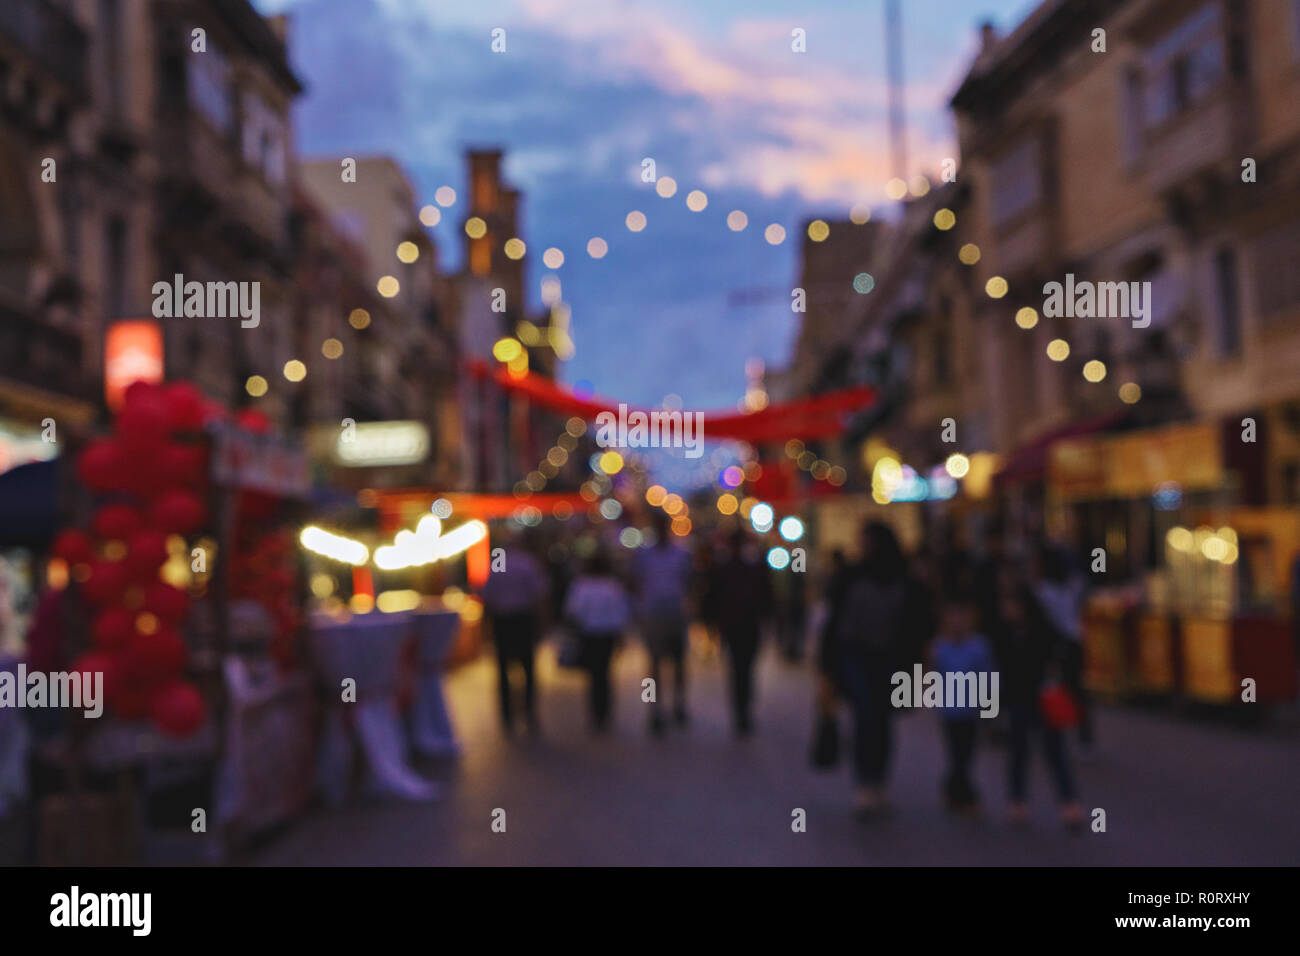 Blurred background of Christmas fair on old town street. Traditional Christmas market time concept with colorful Christmas lights - Stock Image